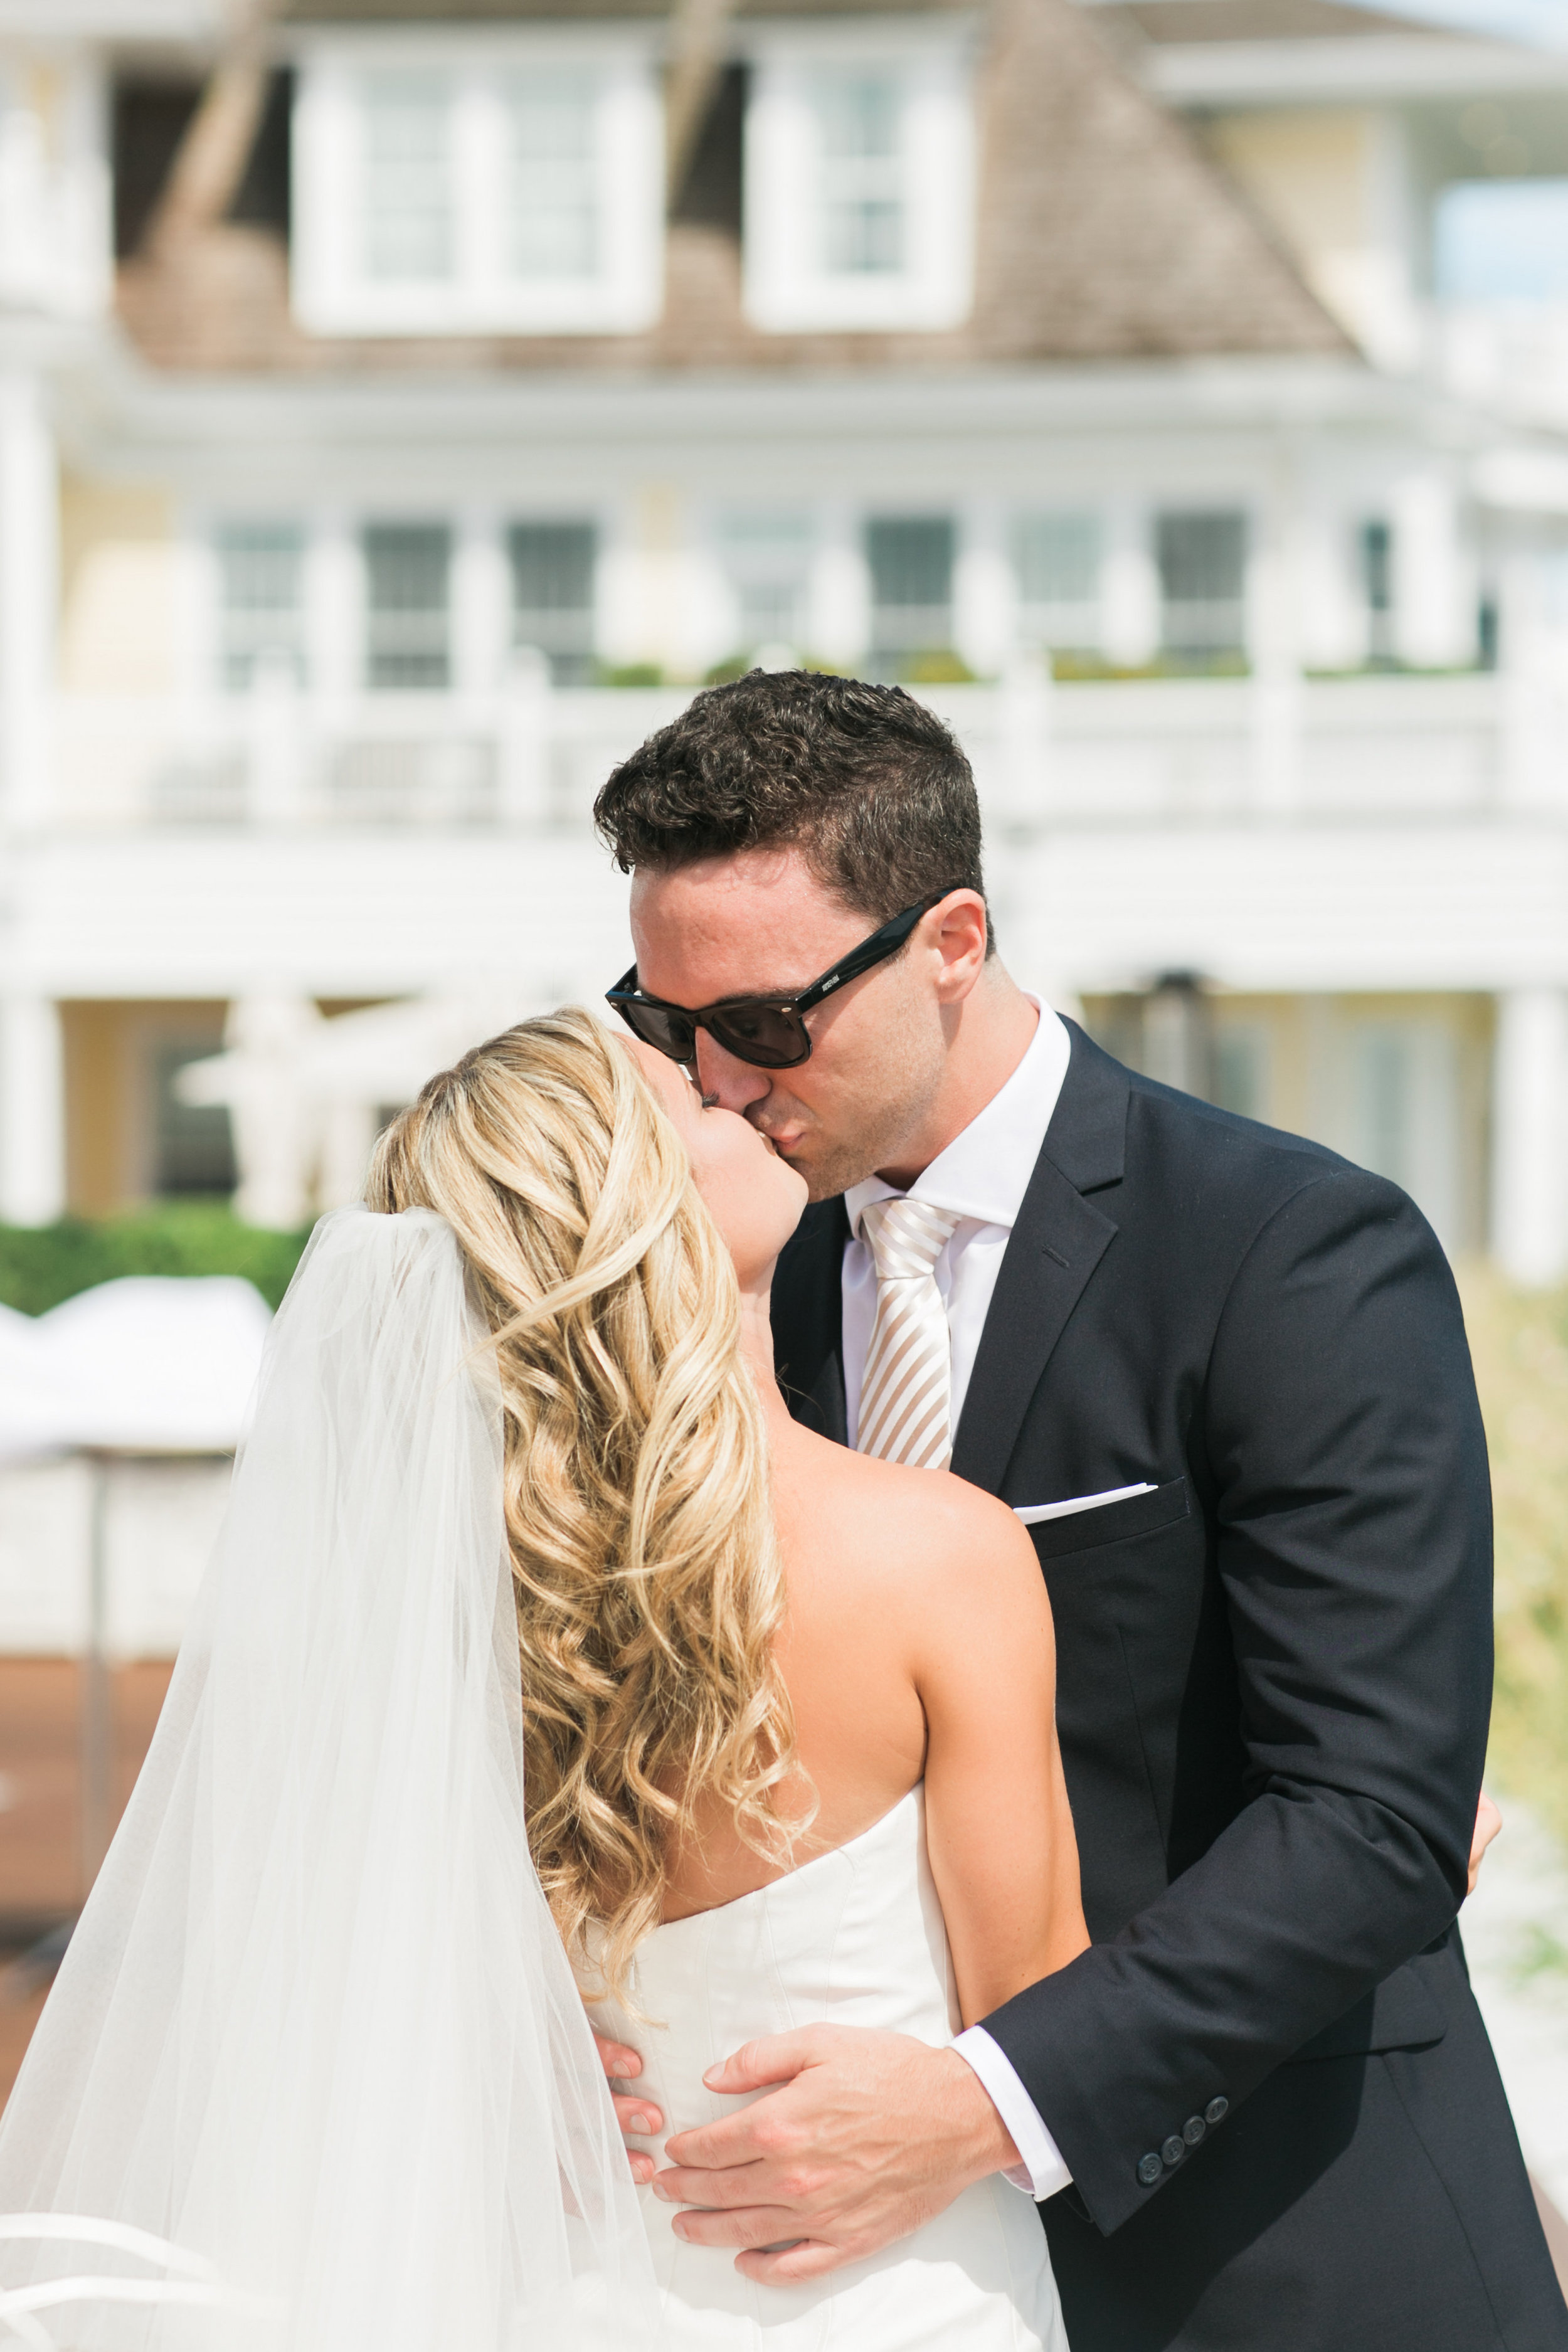 Jaclyn_Chris Ocean House Wedding_Rebecca Arthurs-0135.jpg